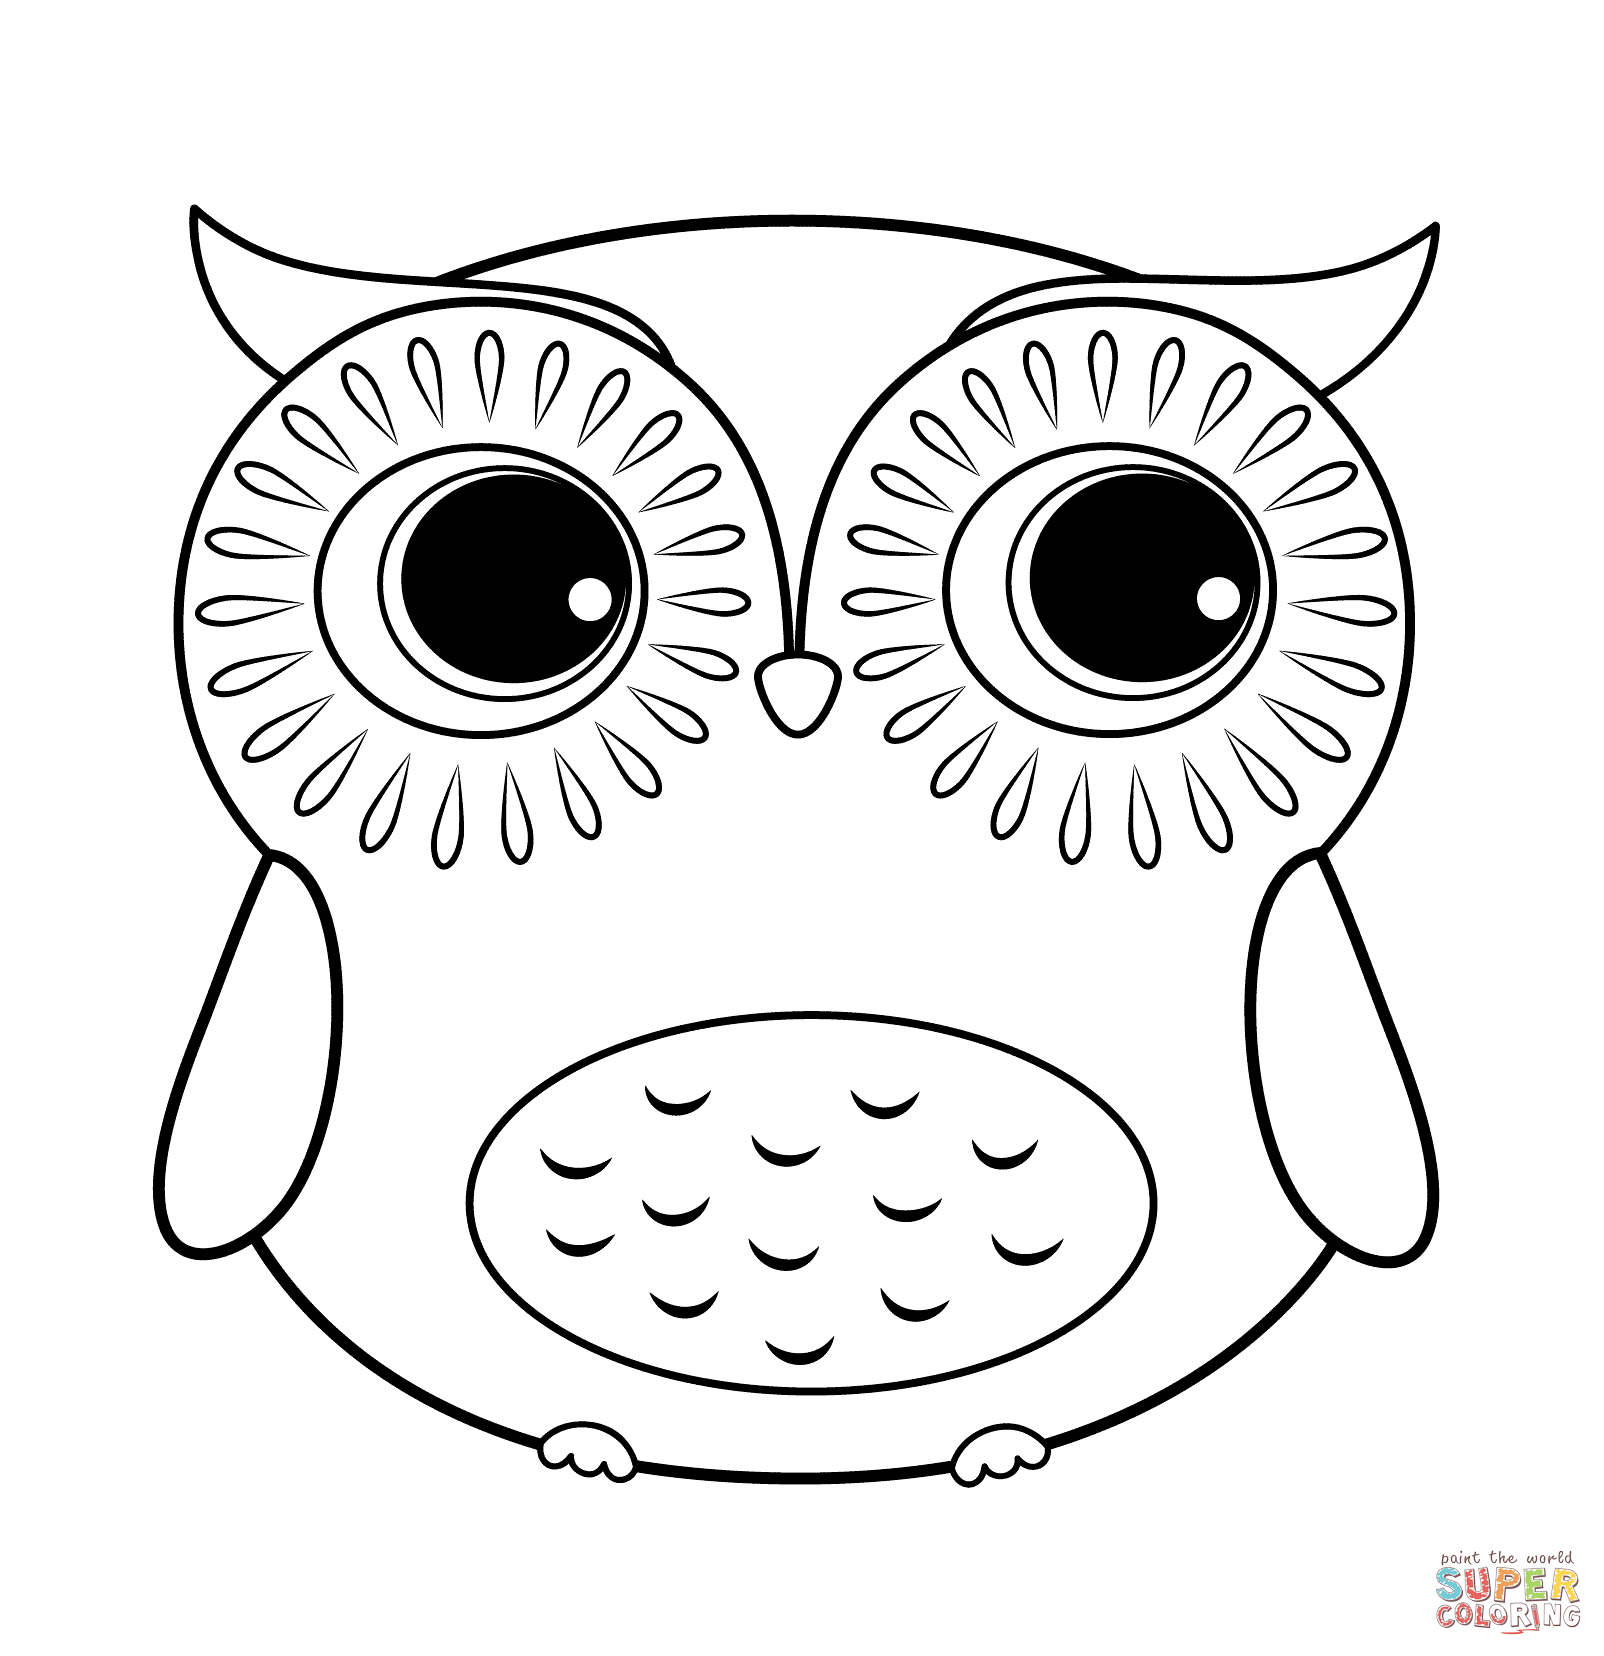 print owl pictures cute owl coloring page free printable coloring pages print owl pictures